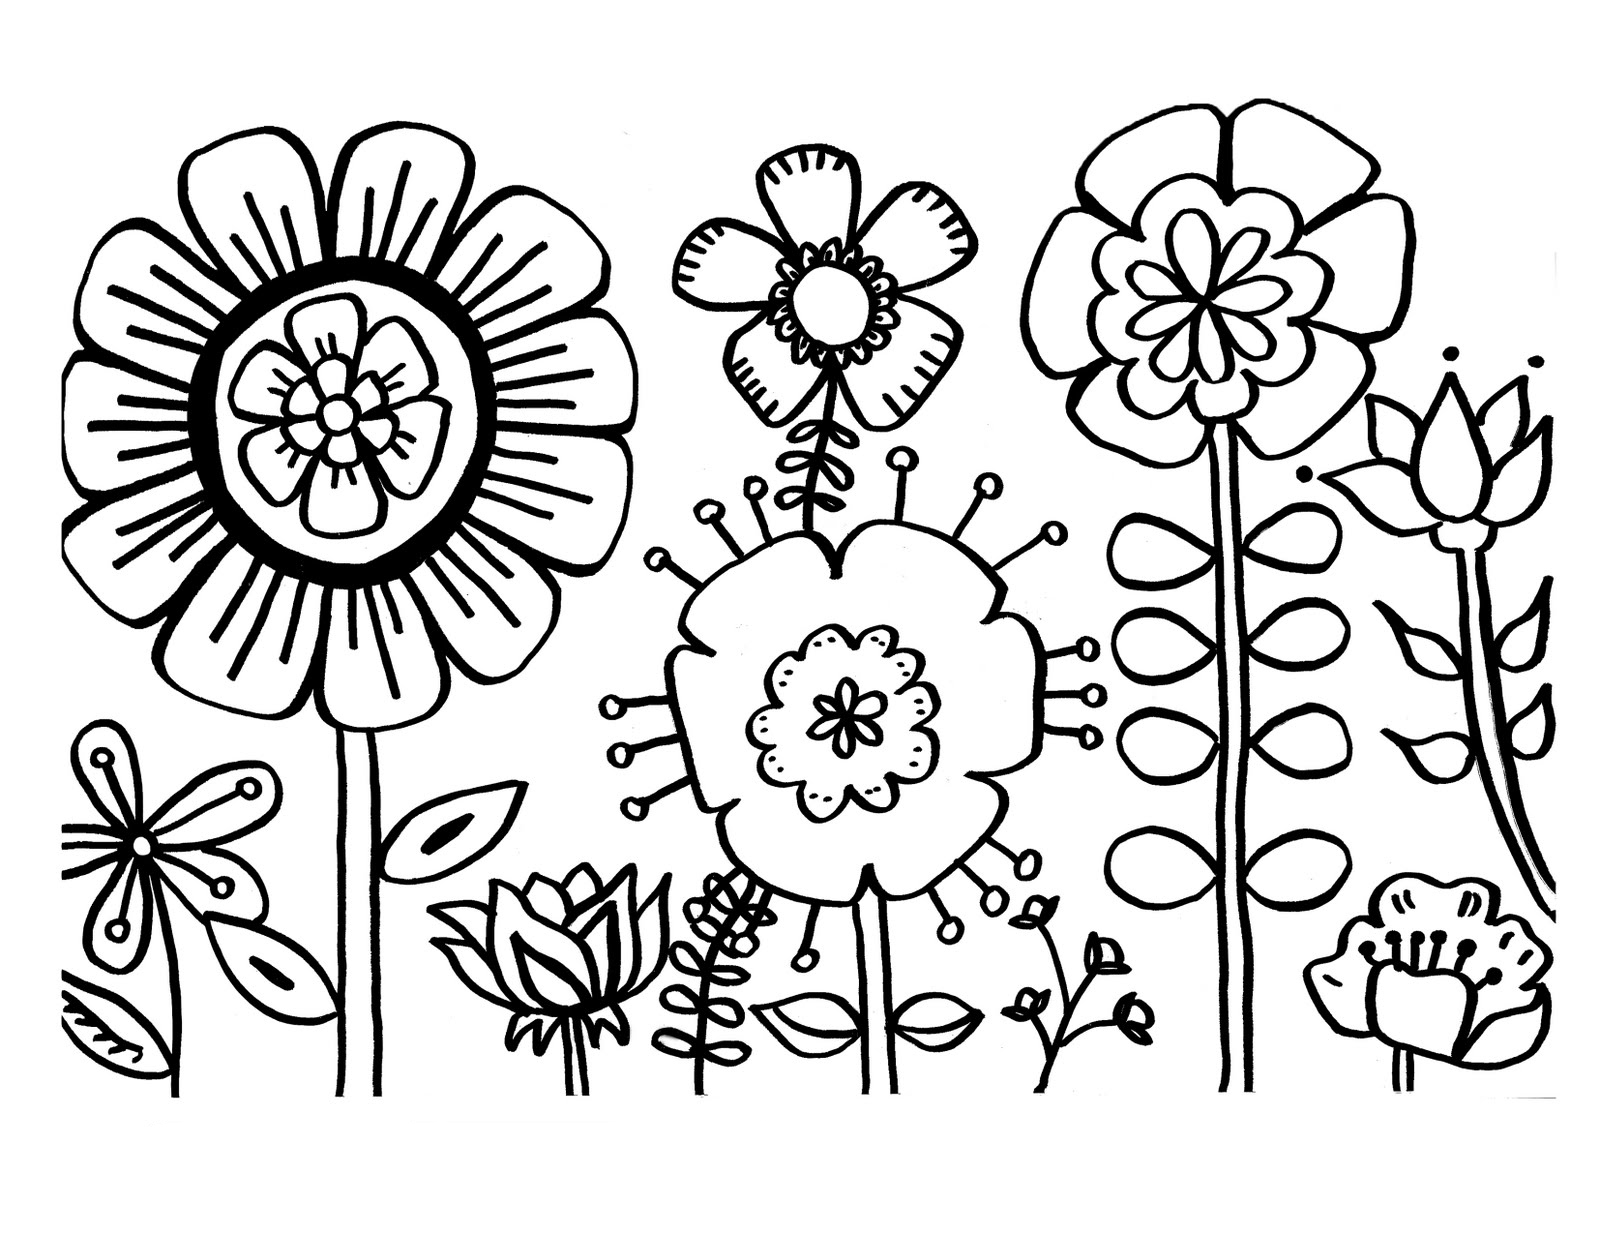 graphic relating to Printable Flowers Coloring Pages identified as Free of charge Printable Flower Coloring Webpages For Little ones - Ideal